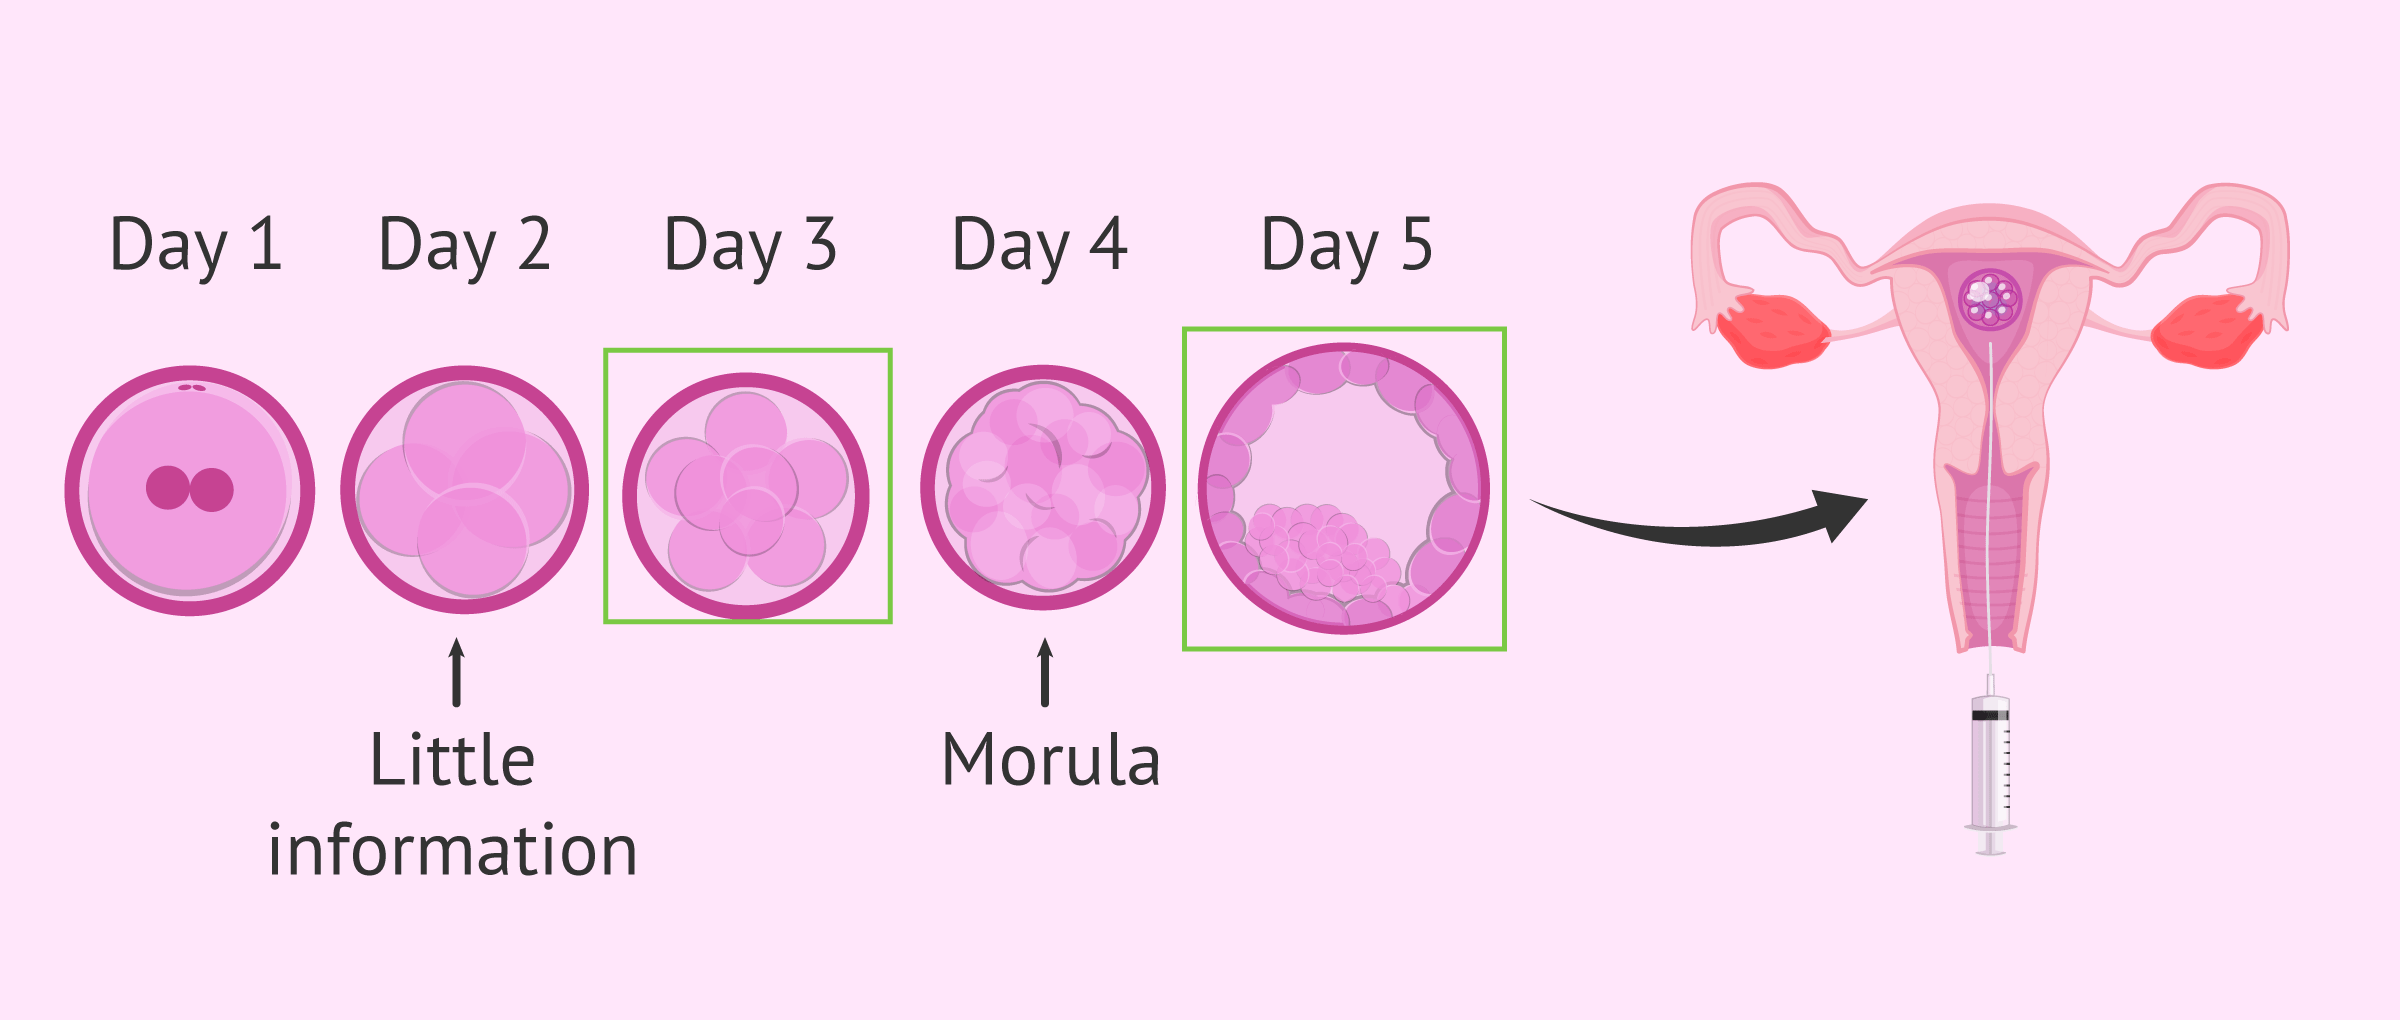 What is the best day for embryo transfer?